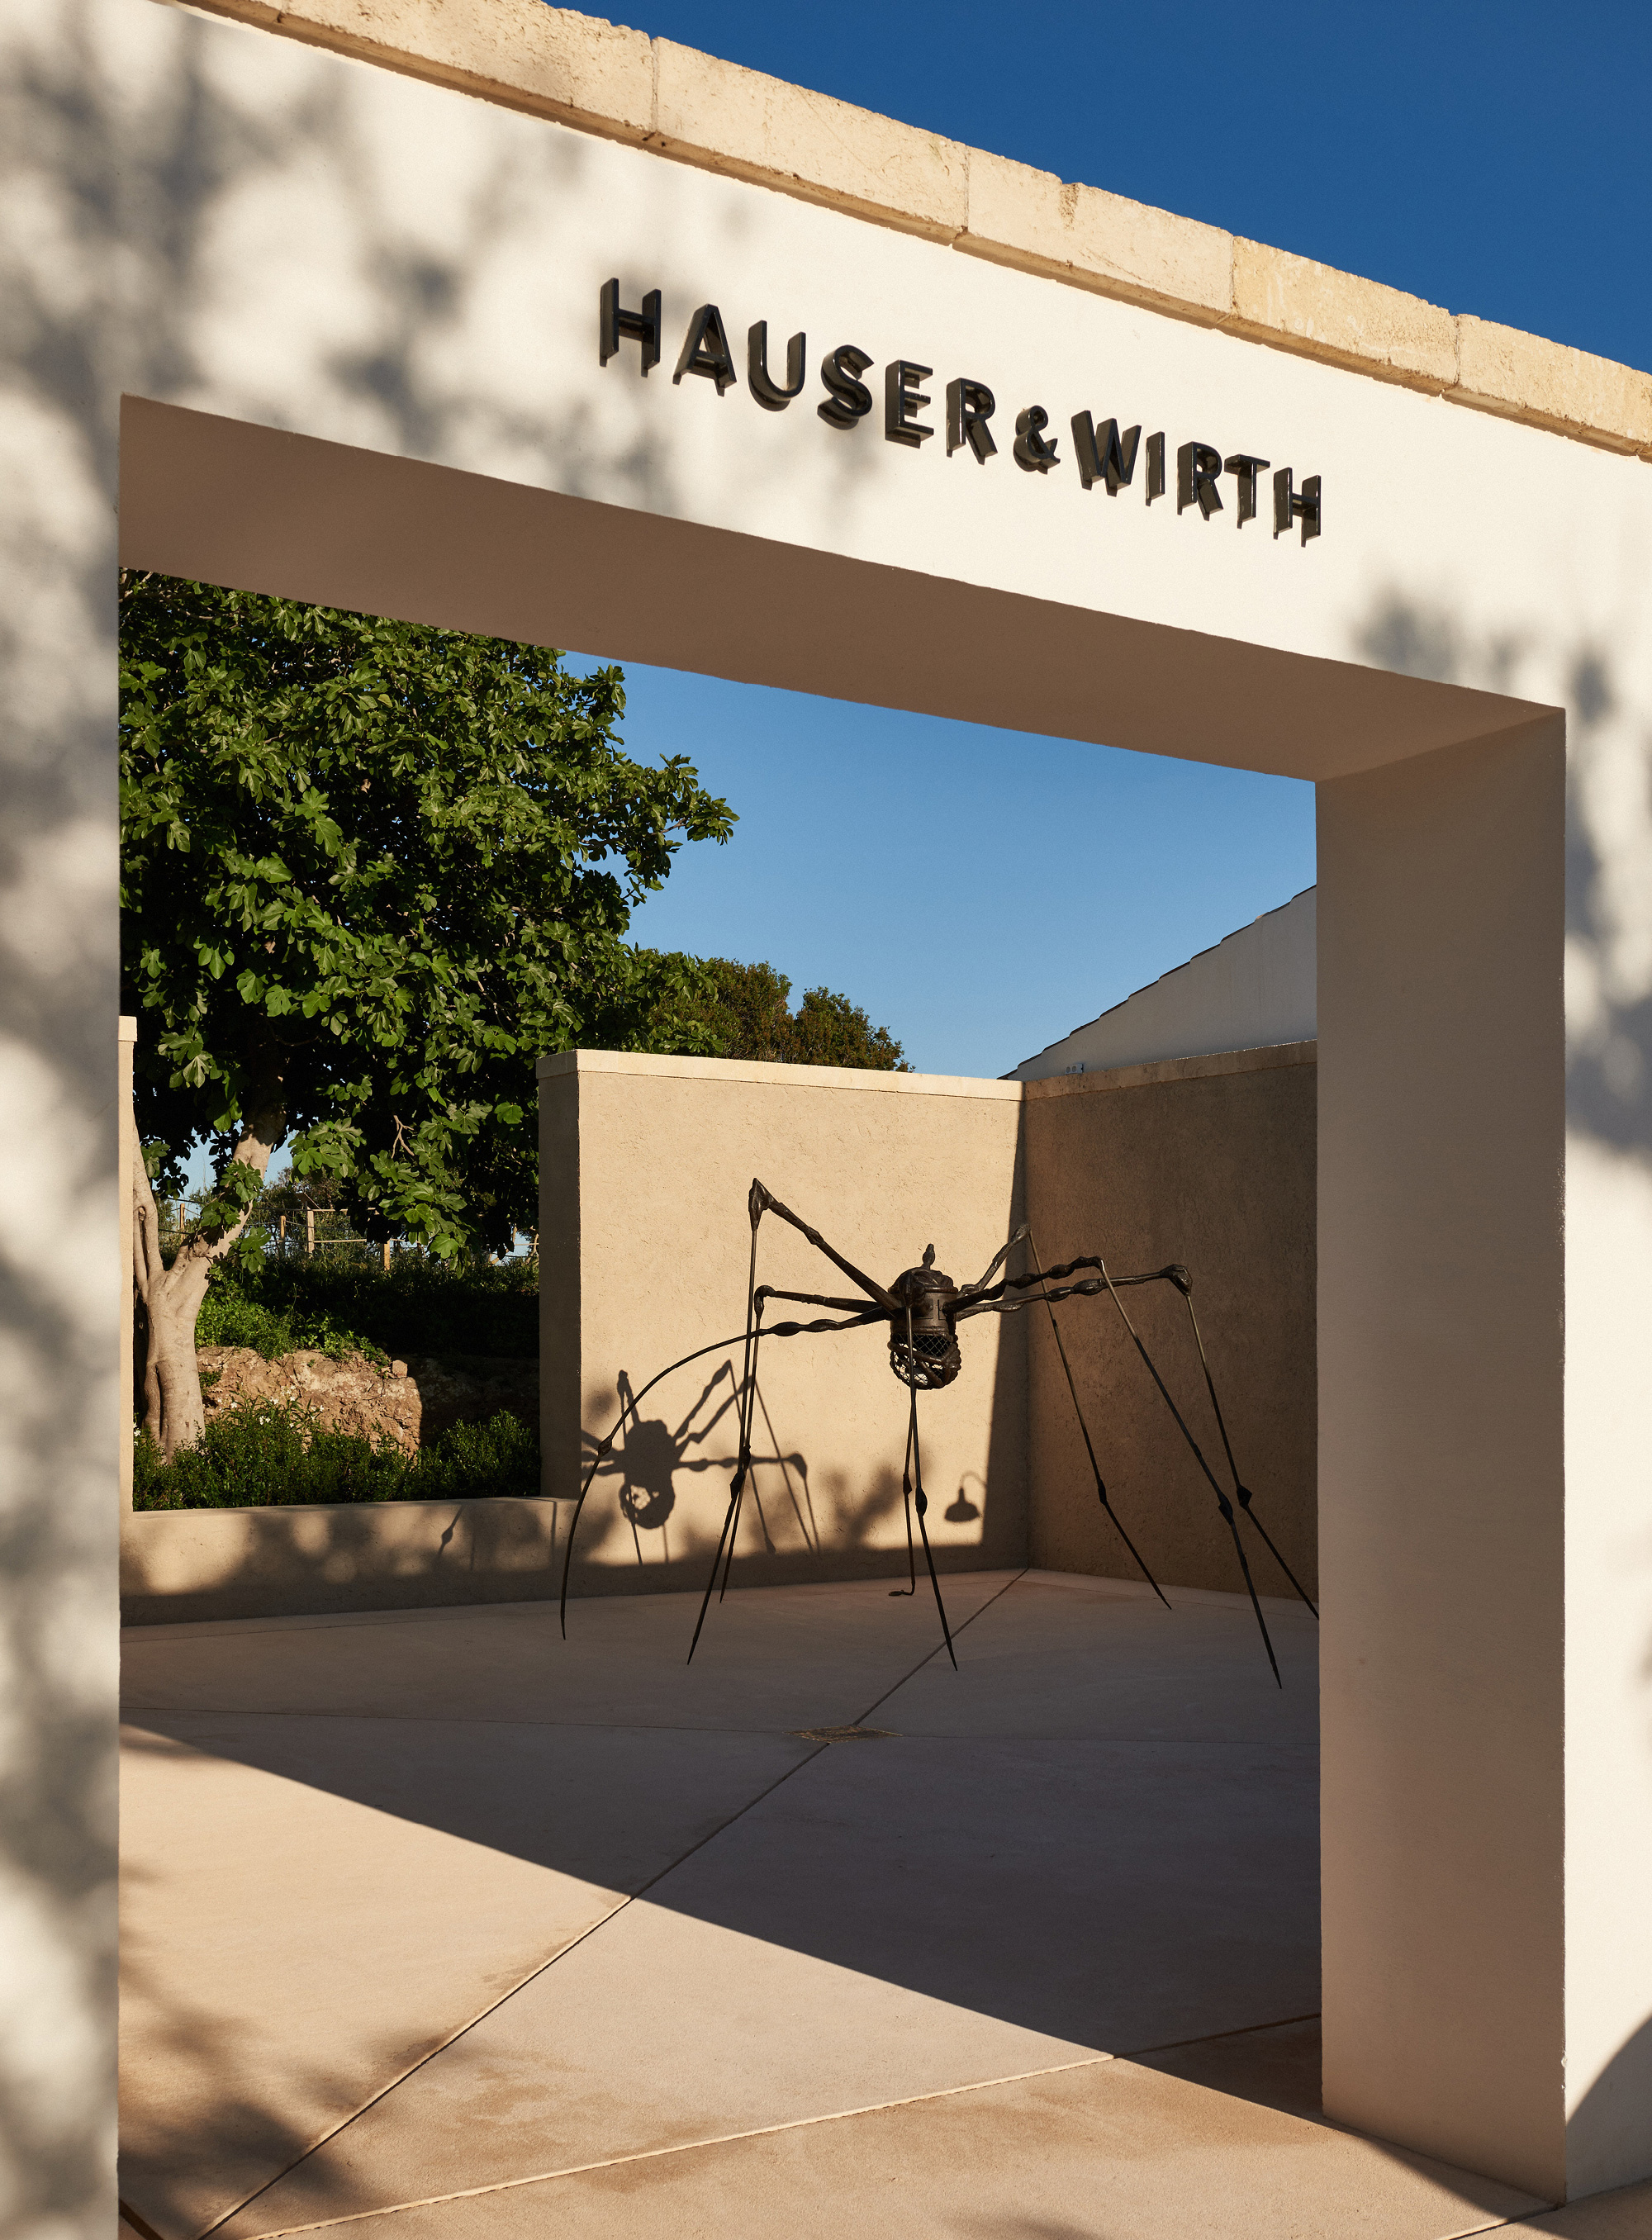 'Spider' (1994) by Louise Bourgeois on Hauser & Wirth Menorca The Easton Foundation / DACS Courtesy The Easton Foundation and Hauser & Wirth © Daniel Schäfer